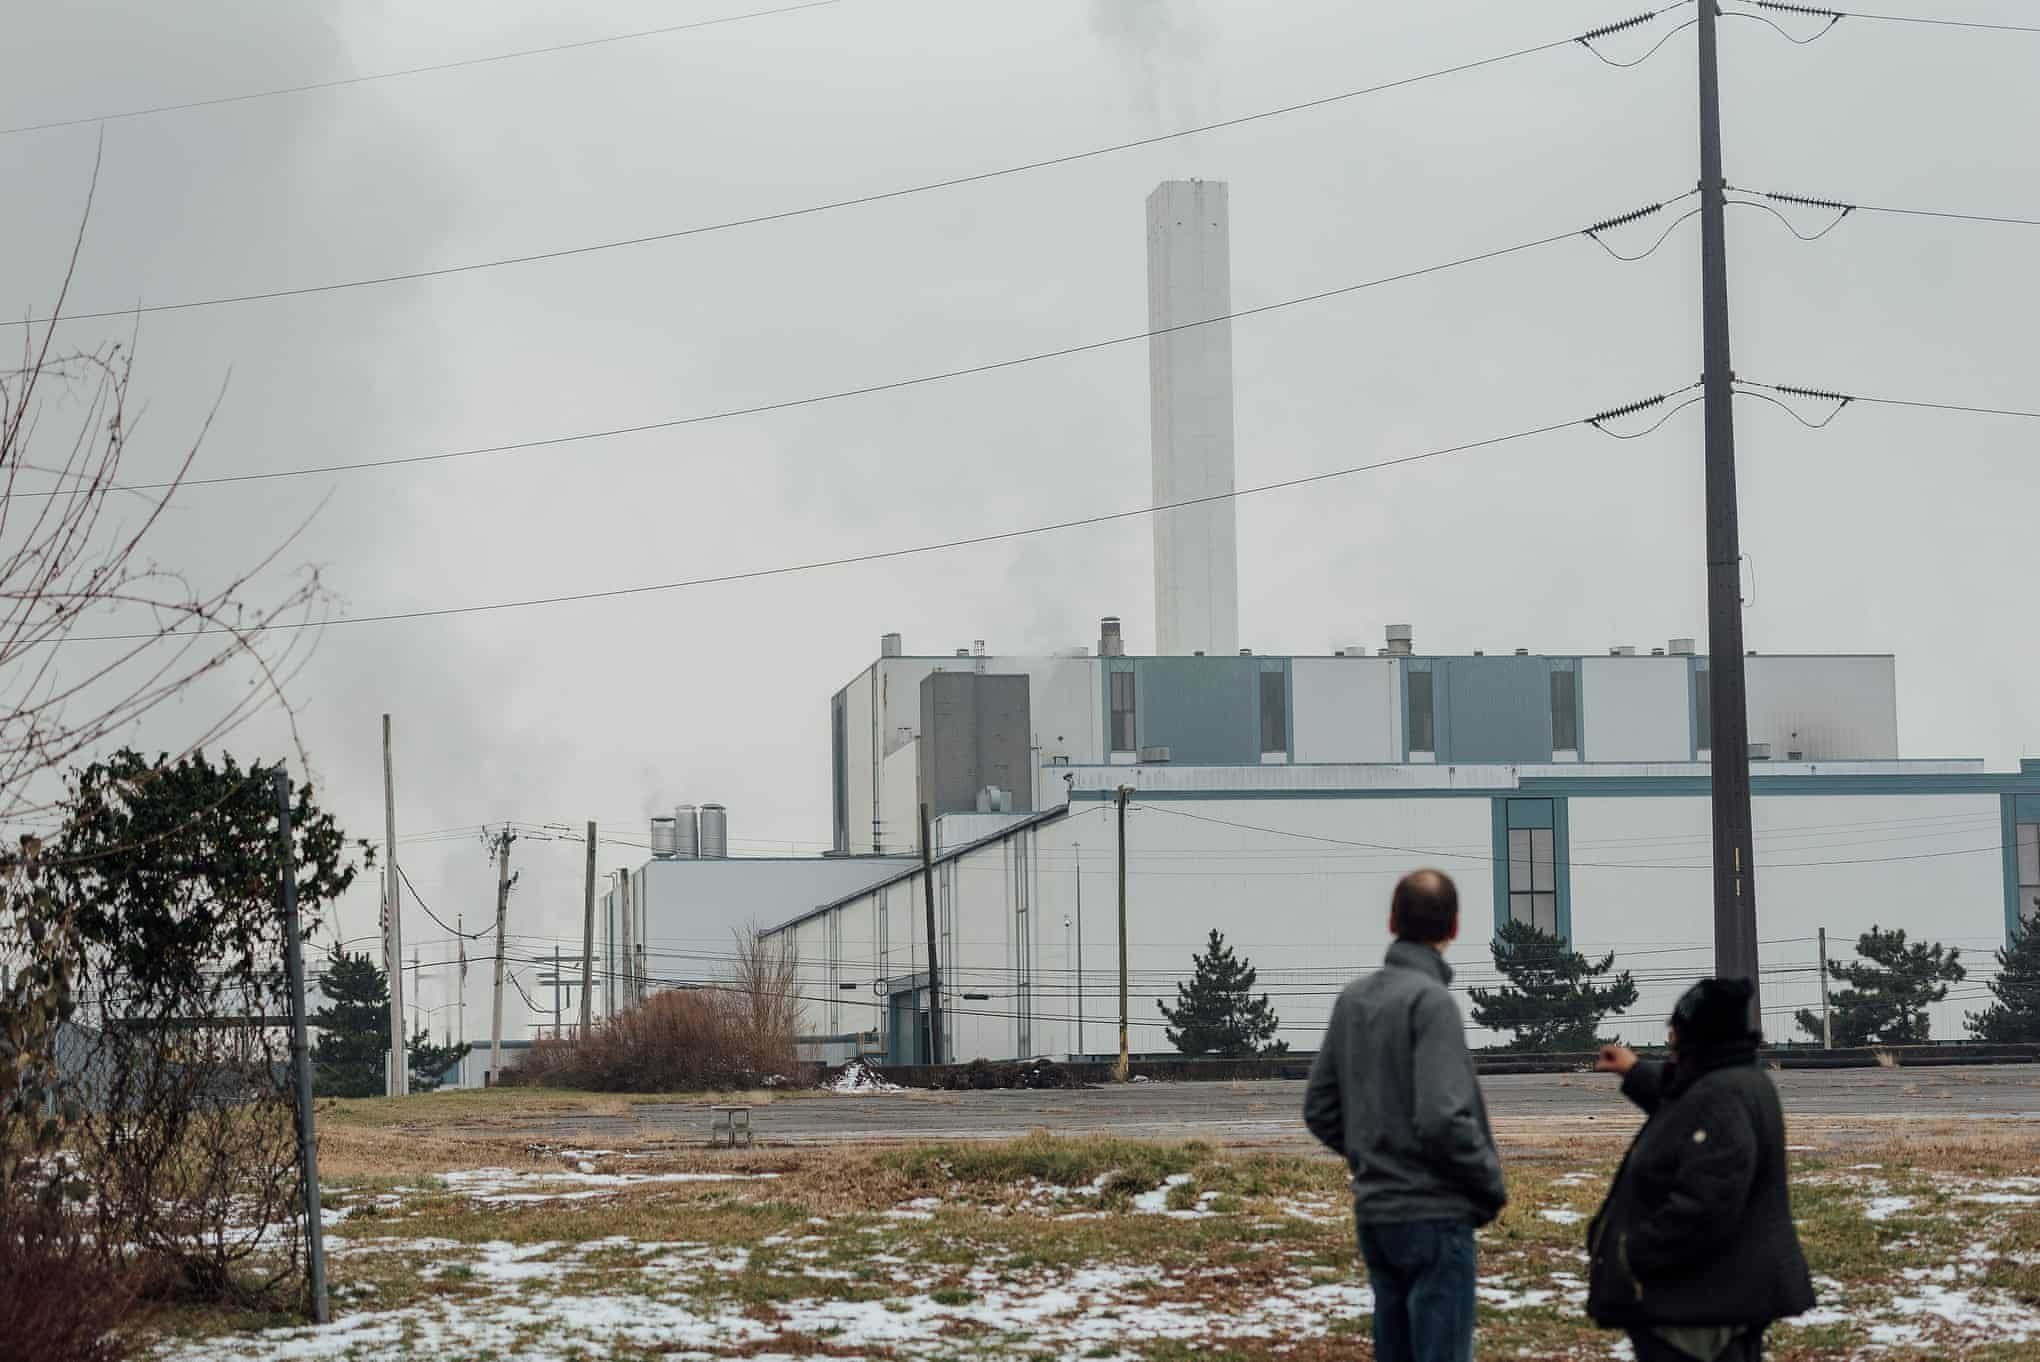 Activists Mike Ewall, left, and Zulene Mayfield stand in front of the Covanta incinerator in Chester, Pennsylvania. The incin